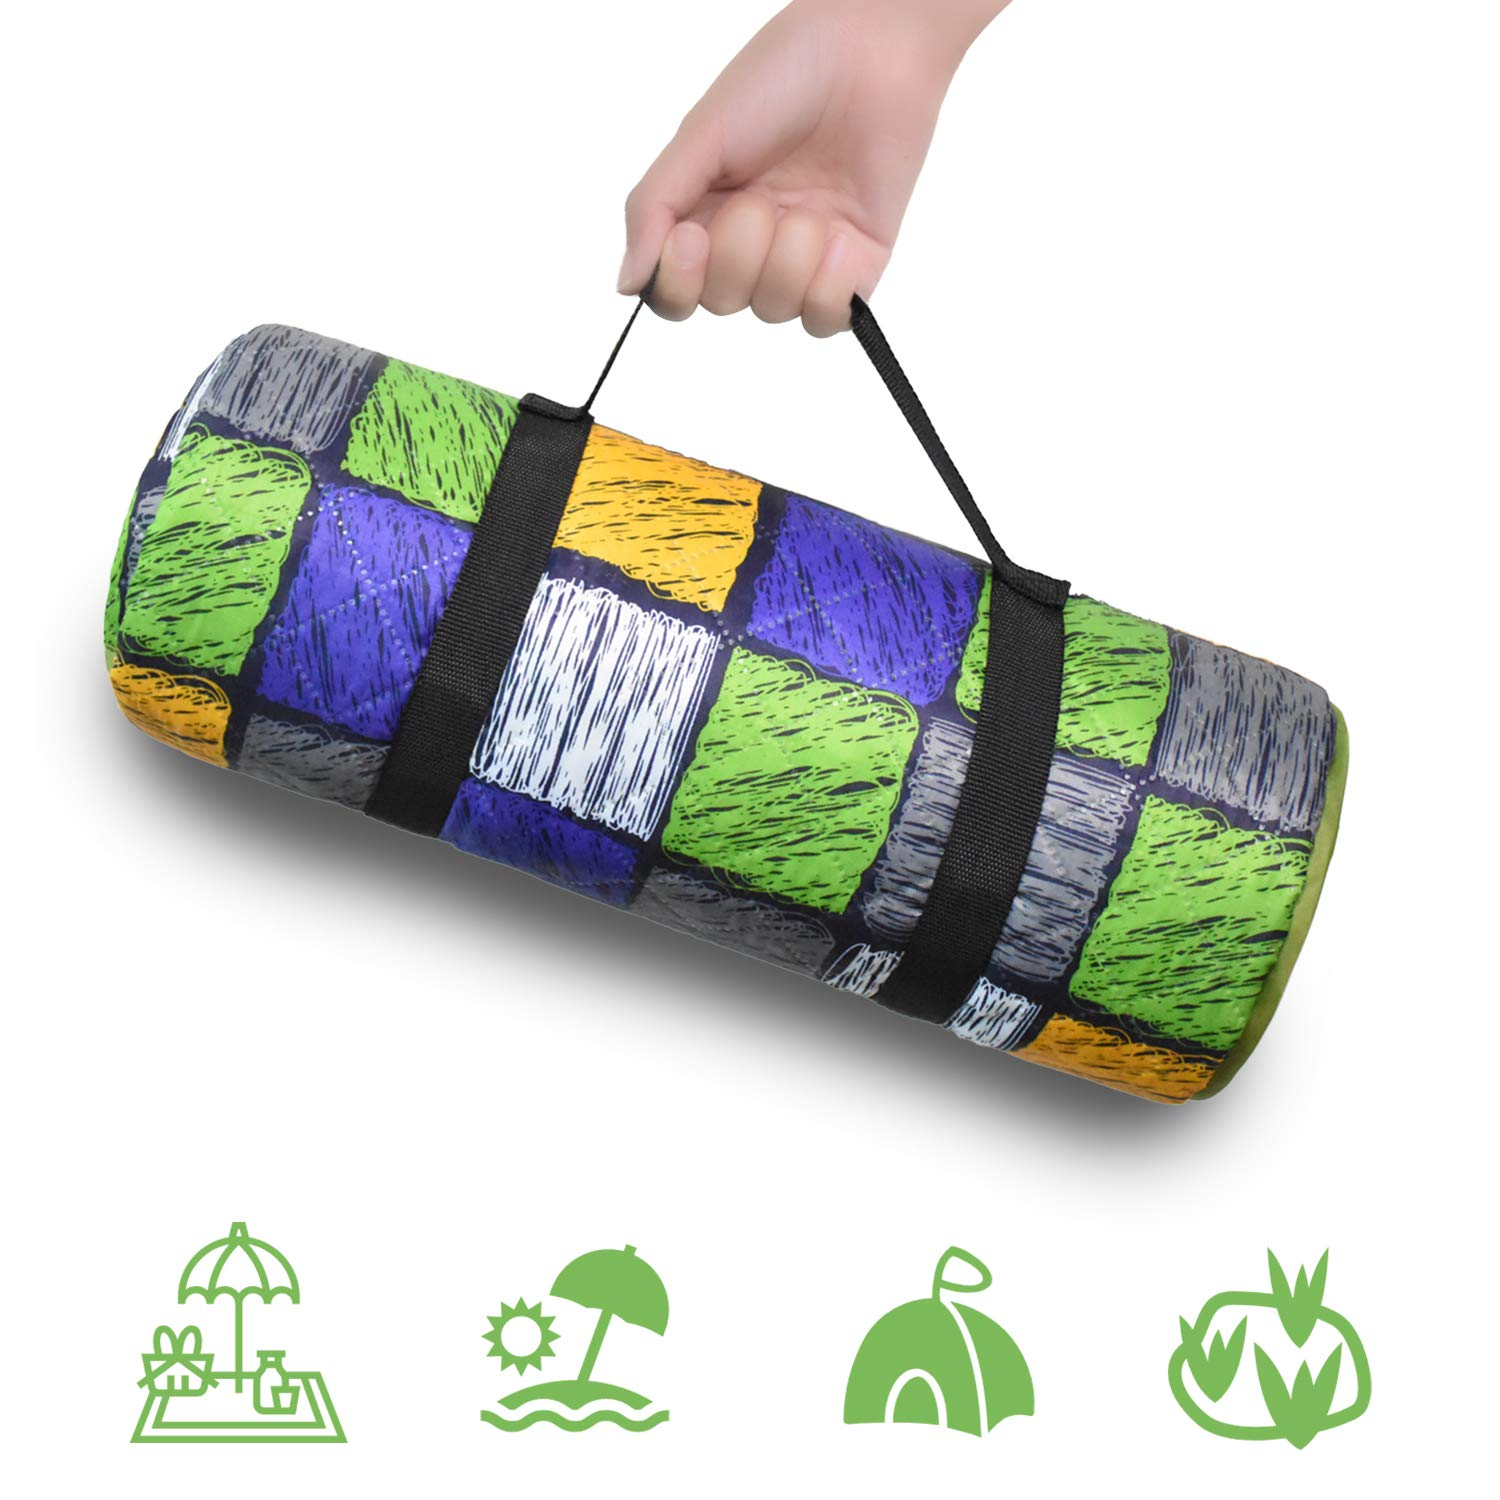 ECOOPRO Extra Large Waterproof Picnic Blanket with Handle, Foldable & Portable Camping Mat, Sandproof Outdoor Blankets for Camping, Beach, Hiking, Grass Travel (79'' L X 57'' W) by ECOOPRO